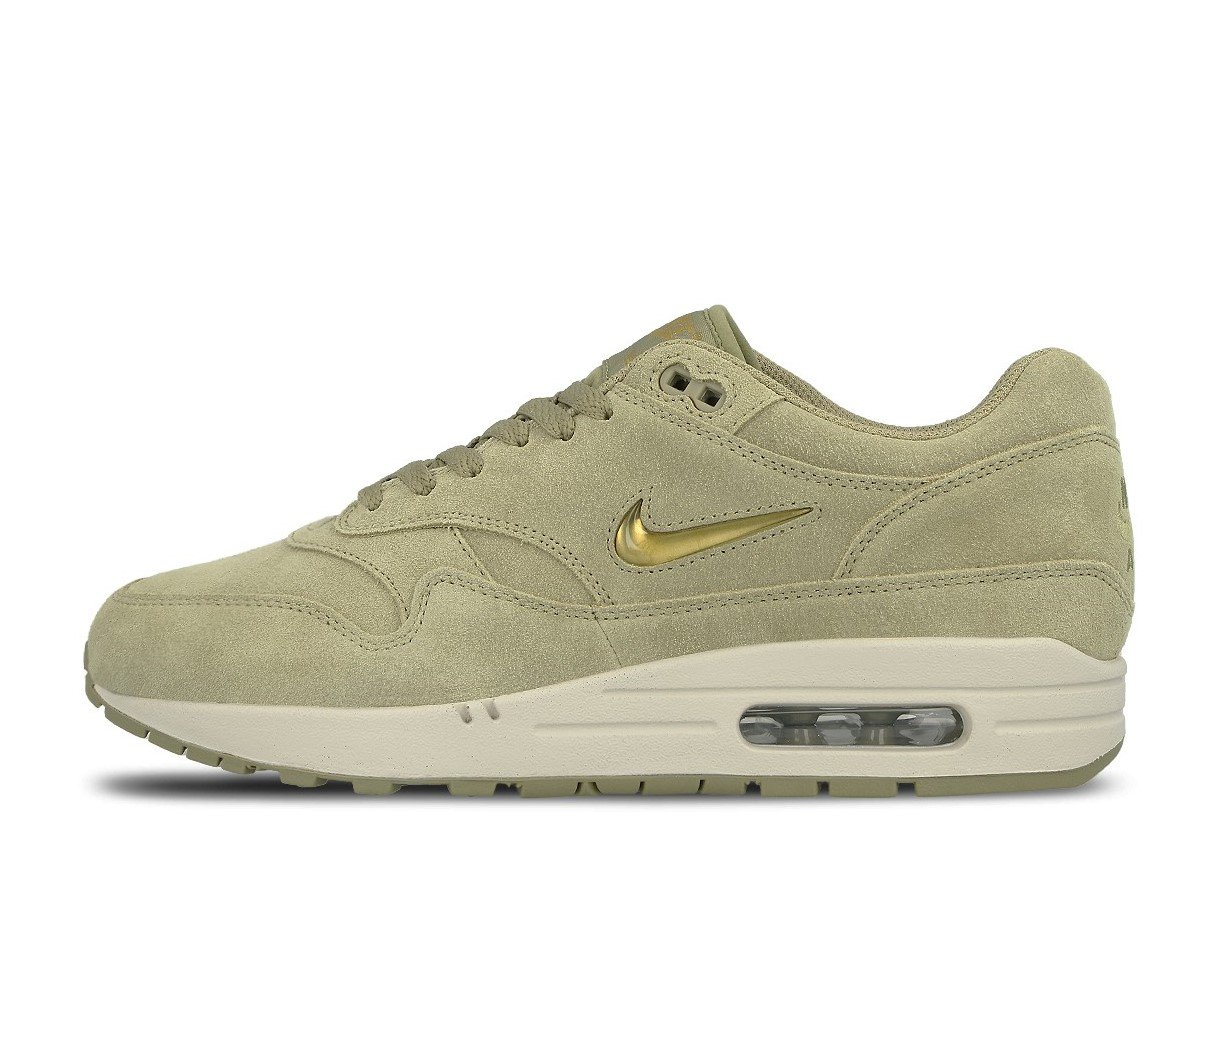 super popular 1c6eb 72b12 Galleon - NIKE Air Max 1 Premium SC Mens Running Shoes Size 9.5 Neutral  Olive Metallic Gold